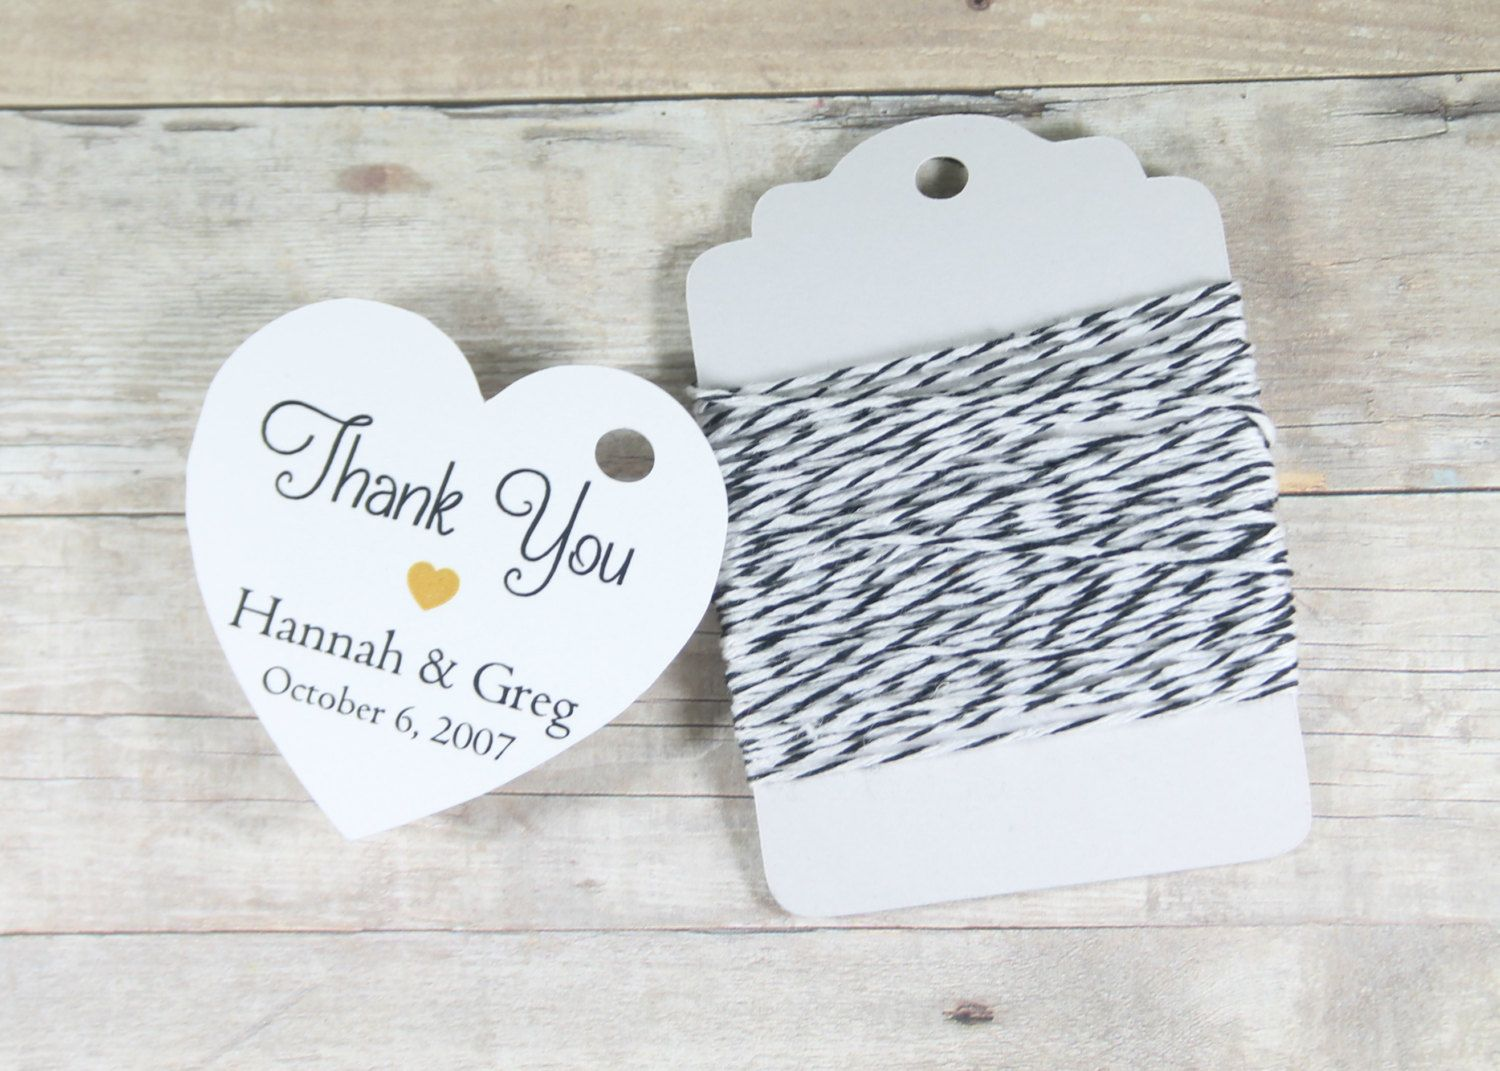 Personalized Wedding Tags Set of 20 - White Heart Tag - Bridal ...